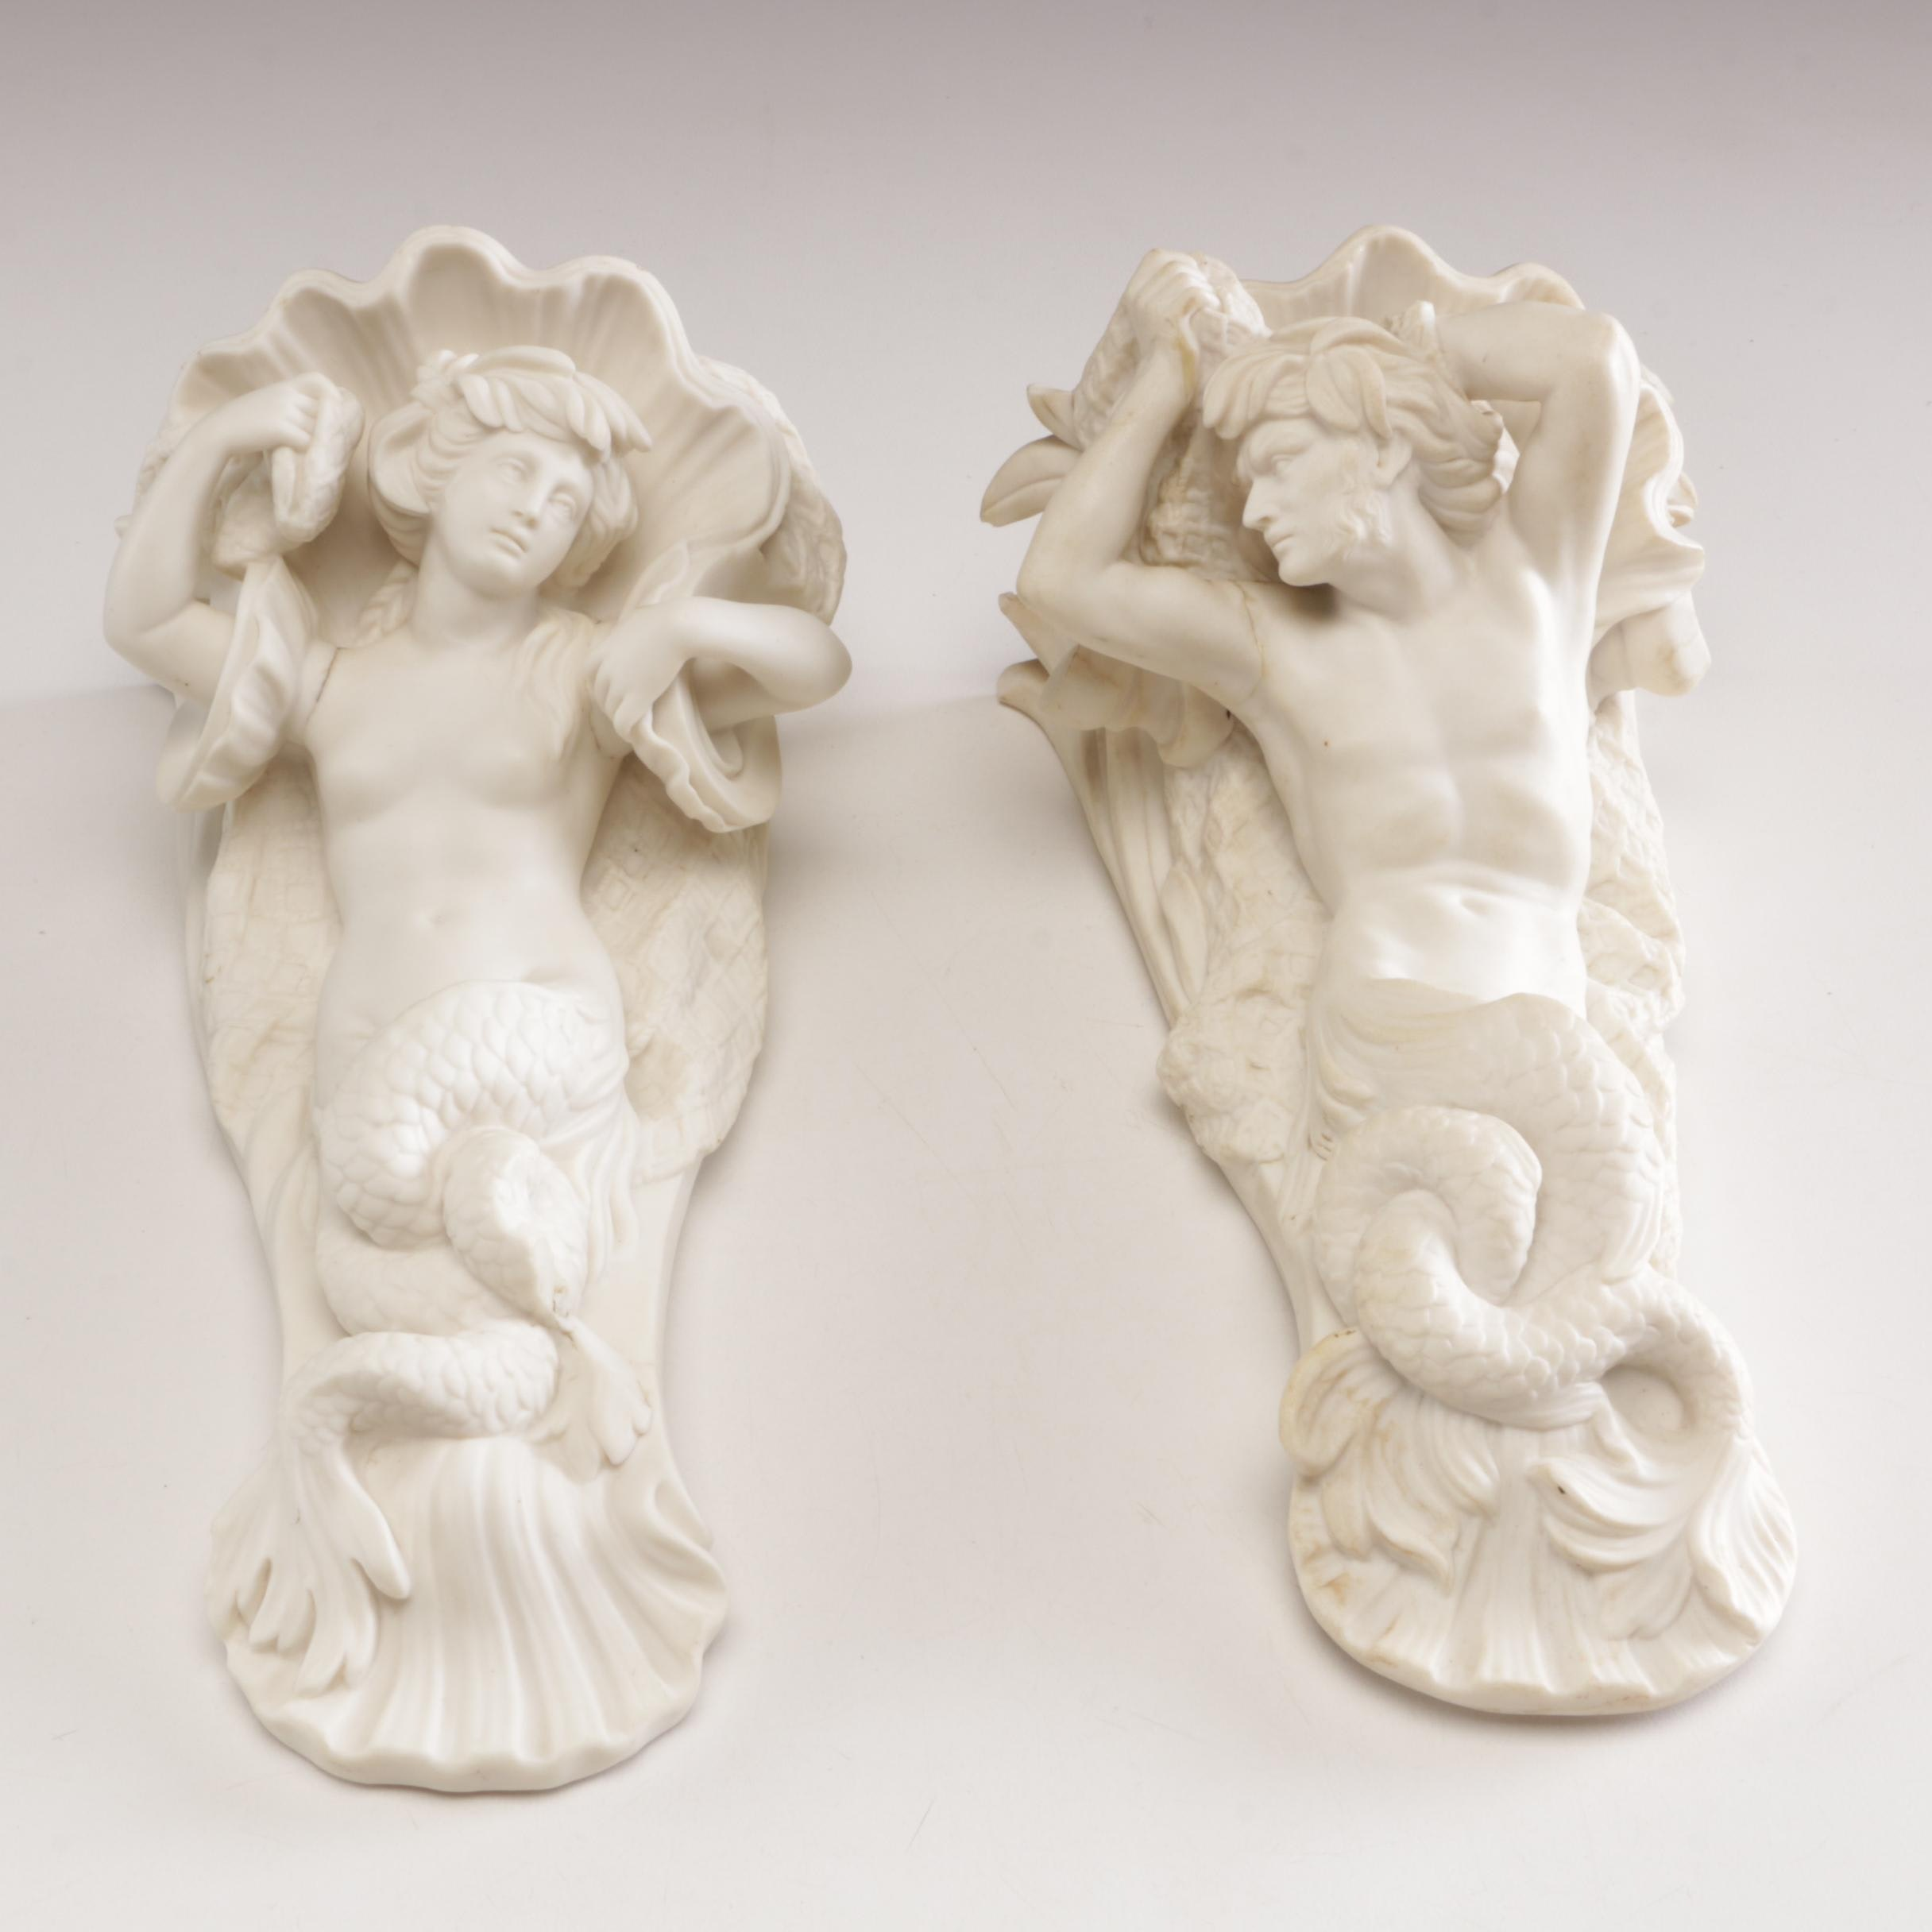 Pair of Ceramic Merfolk Wall Accents